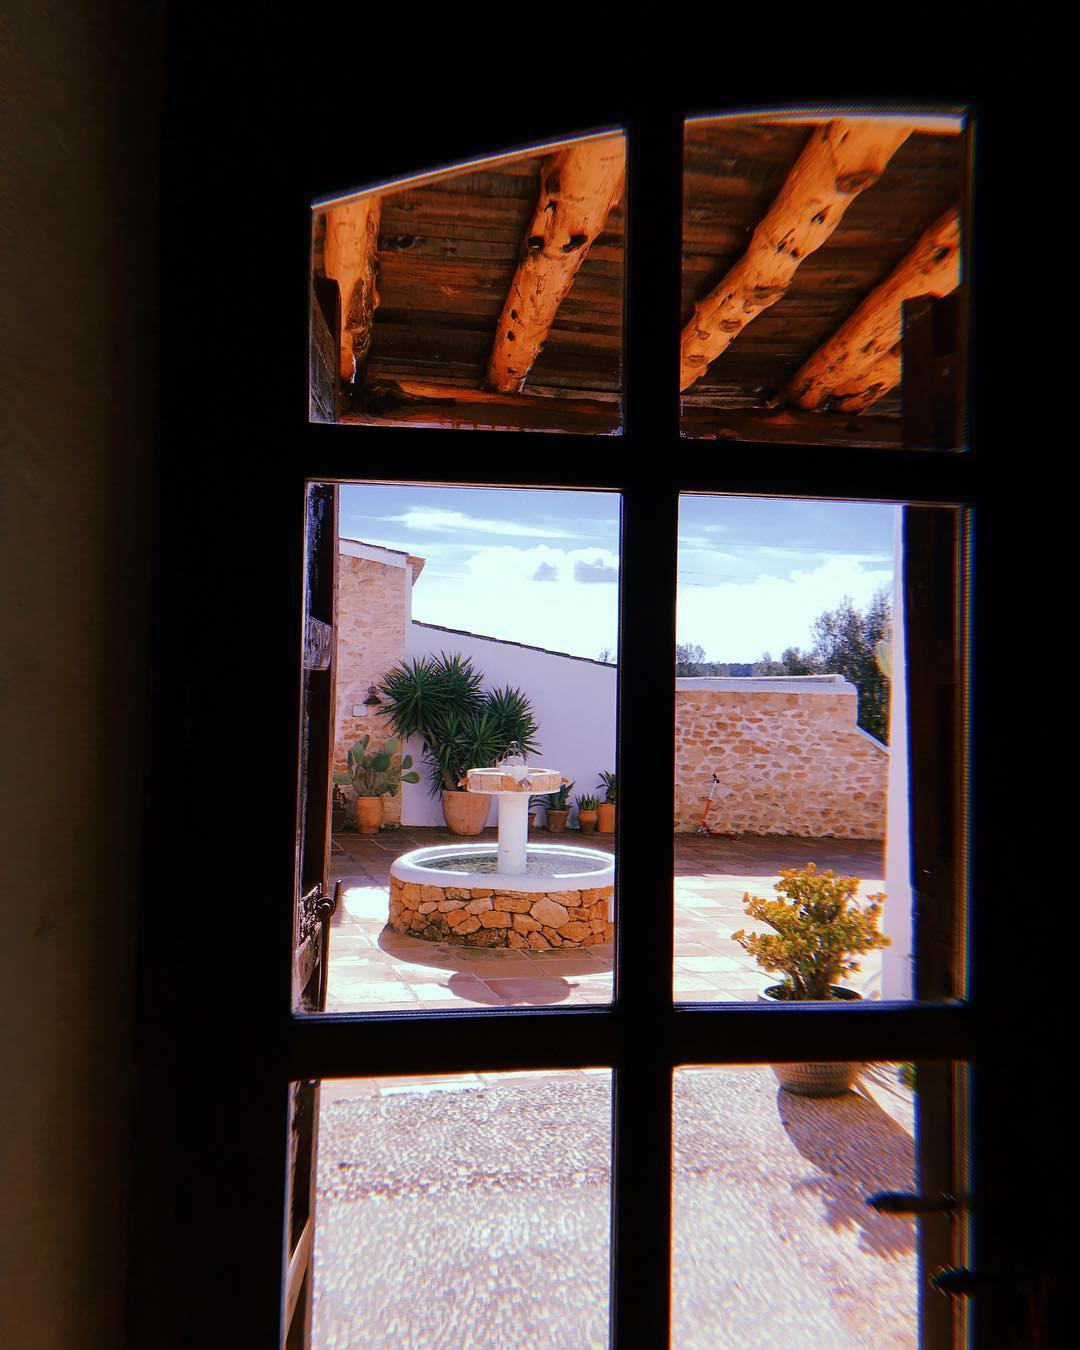 // Ready for the last guests of 2018 // #lascicadasibiza #boutiquevilla #ibiza #winterseason #december #endofyear2018 #santagertrudis #islandlife #rustic #stylish #farmhouse #finca #ibizenca #winter #holidays #itsbetterinibiza